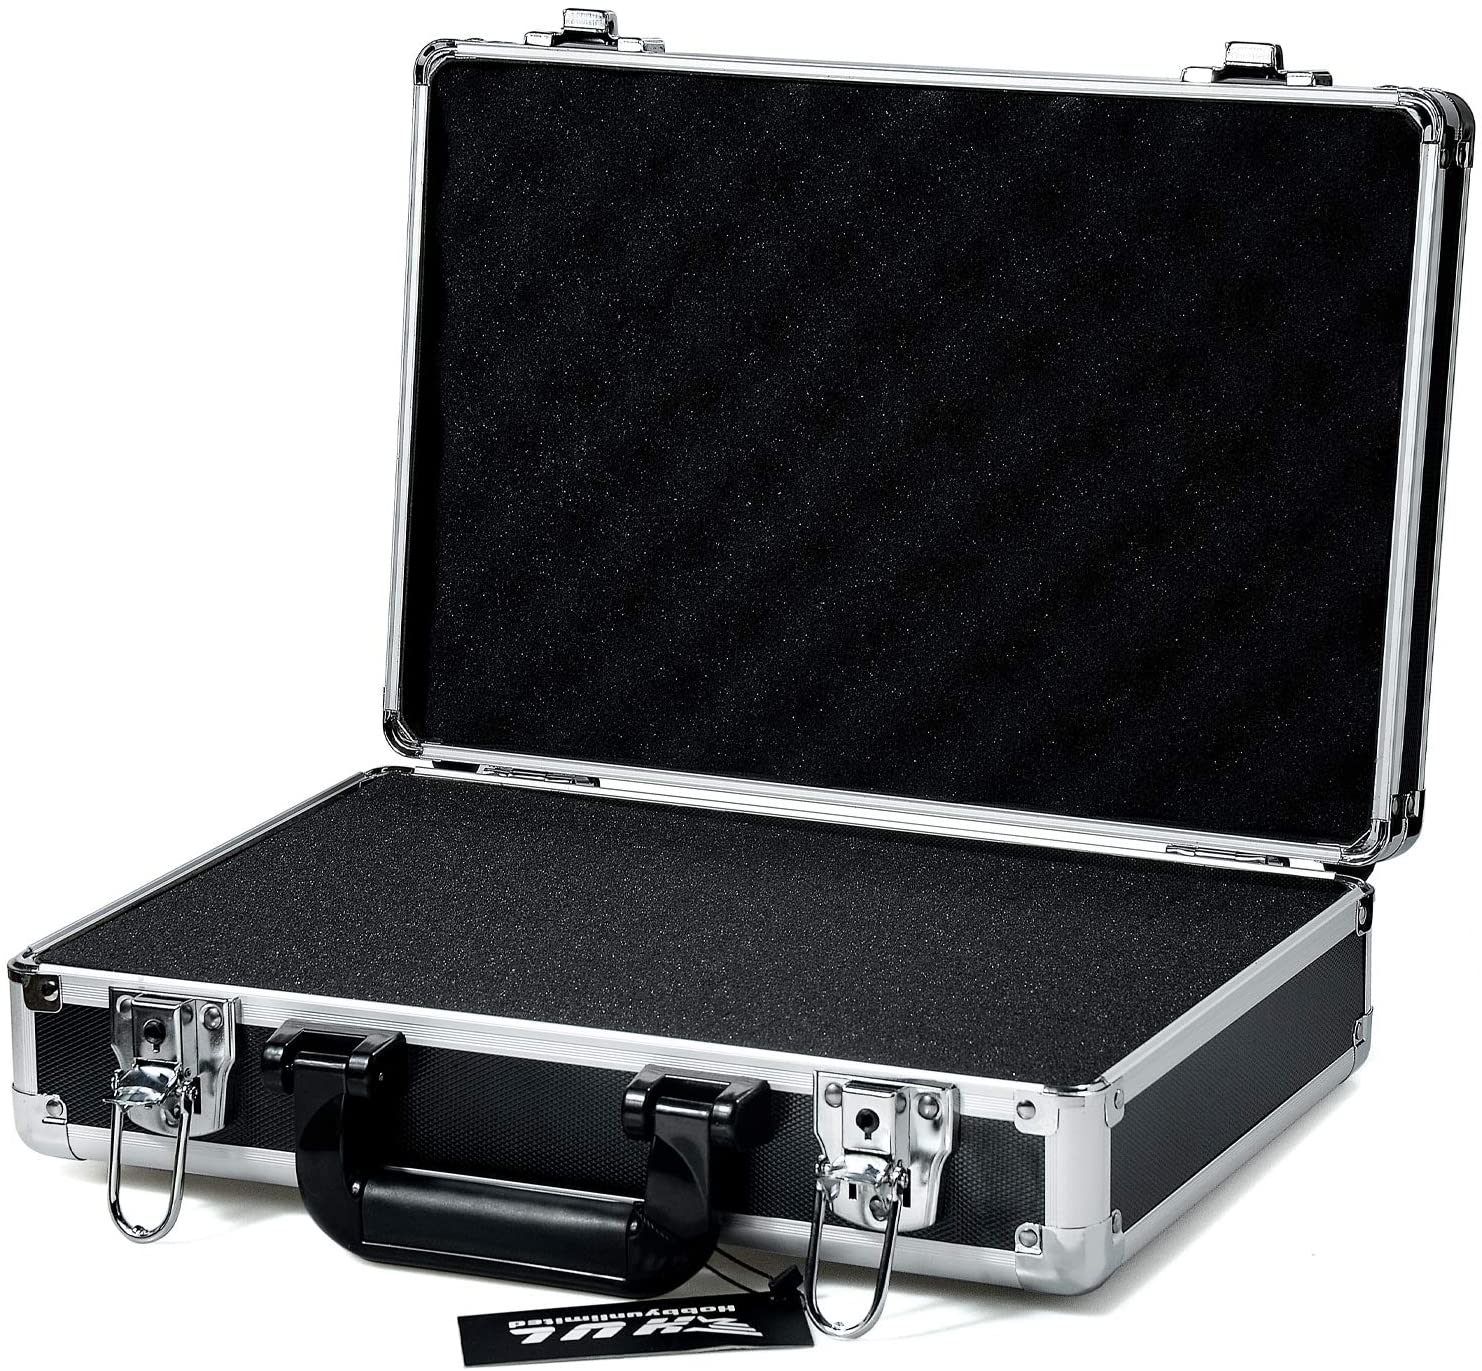 HUL 14in Two-Tone Aluminum Case with Customizable Pluck Foam Interior for Test Instruments Cameras Tools Parts and Accessories